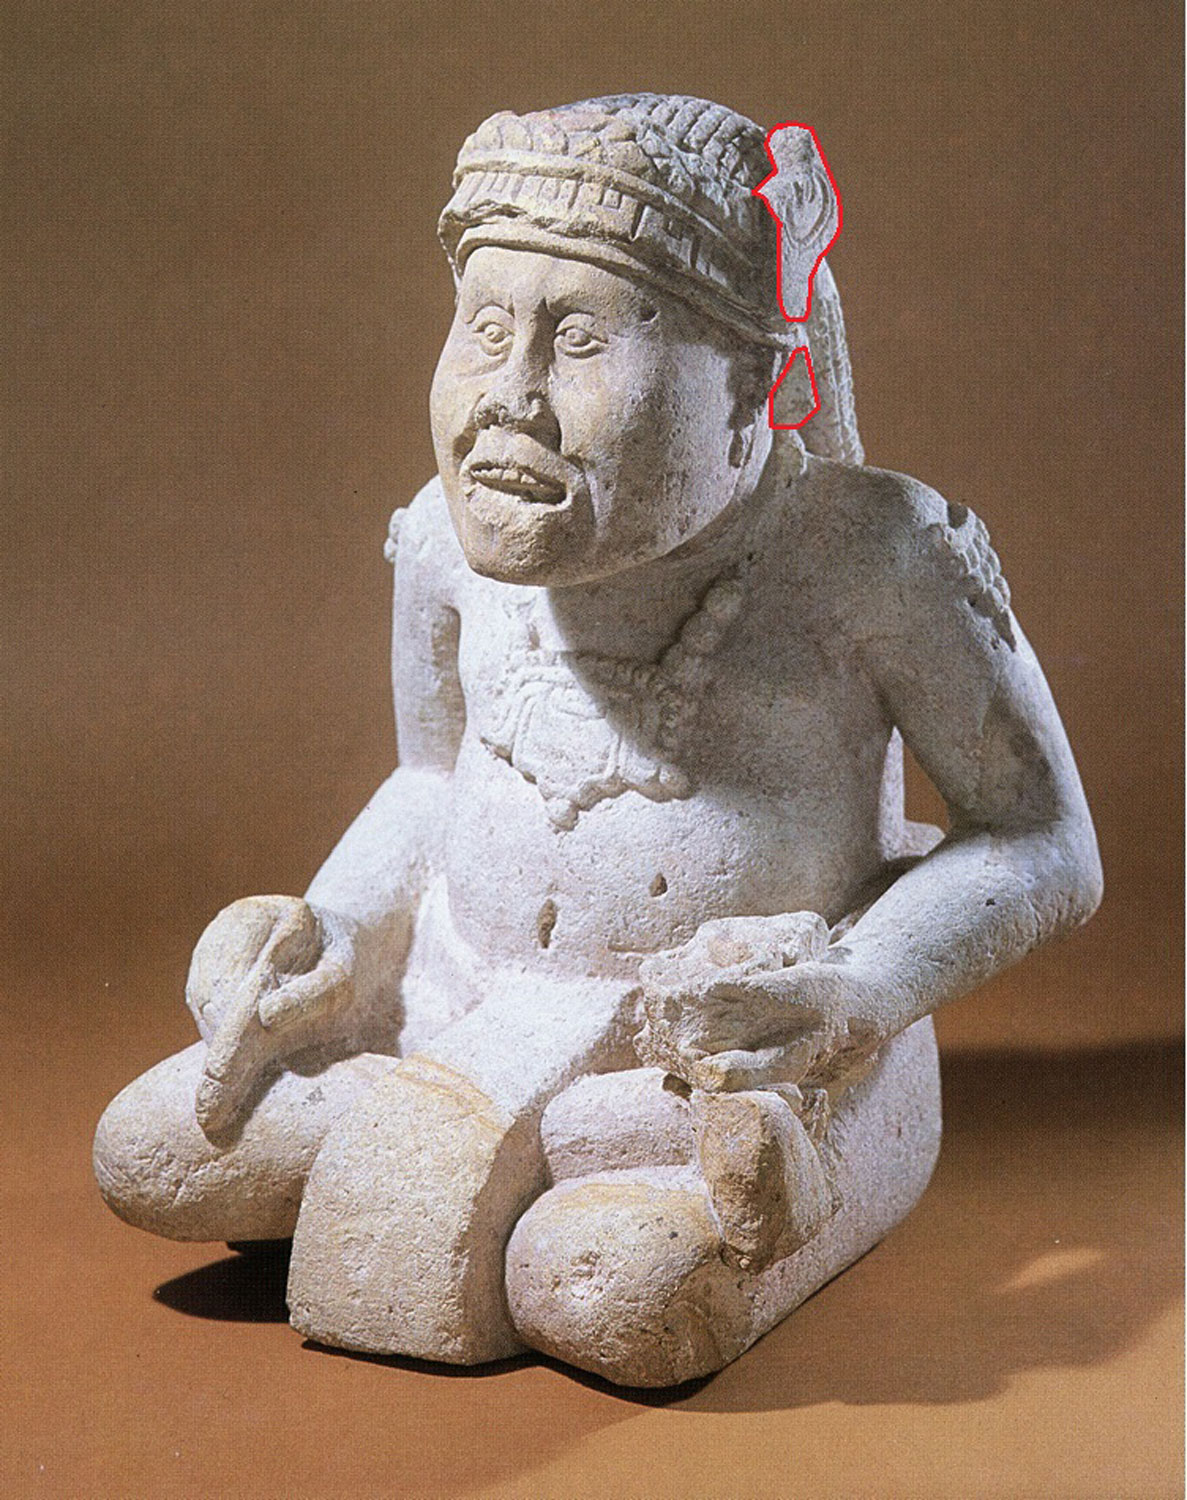 Monkey-man scribe from Copán. He holds a brush and an inkwell. Note the 'deer' ear. Source:  latinamericanstudies.org .